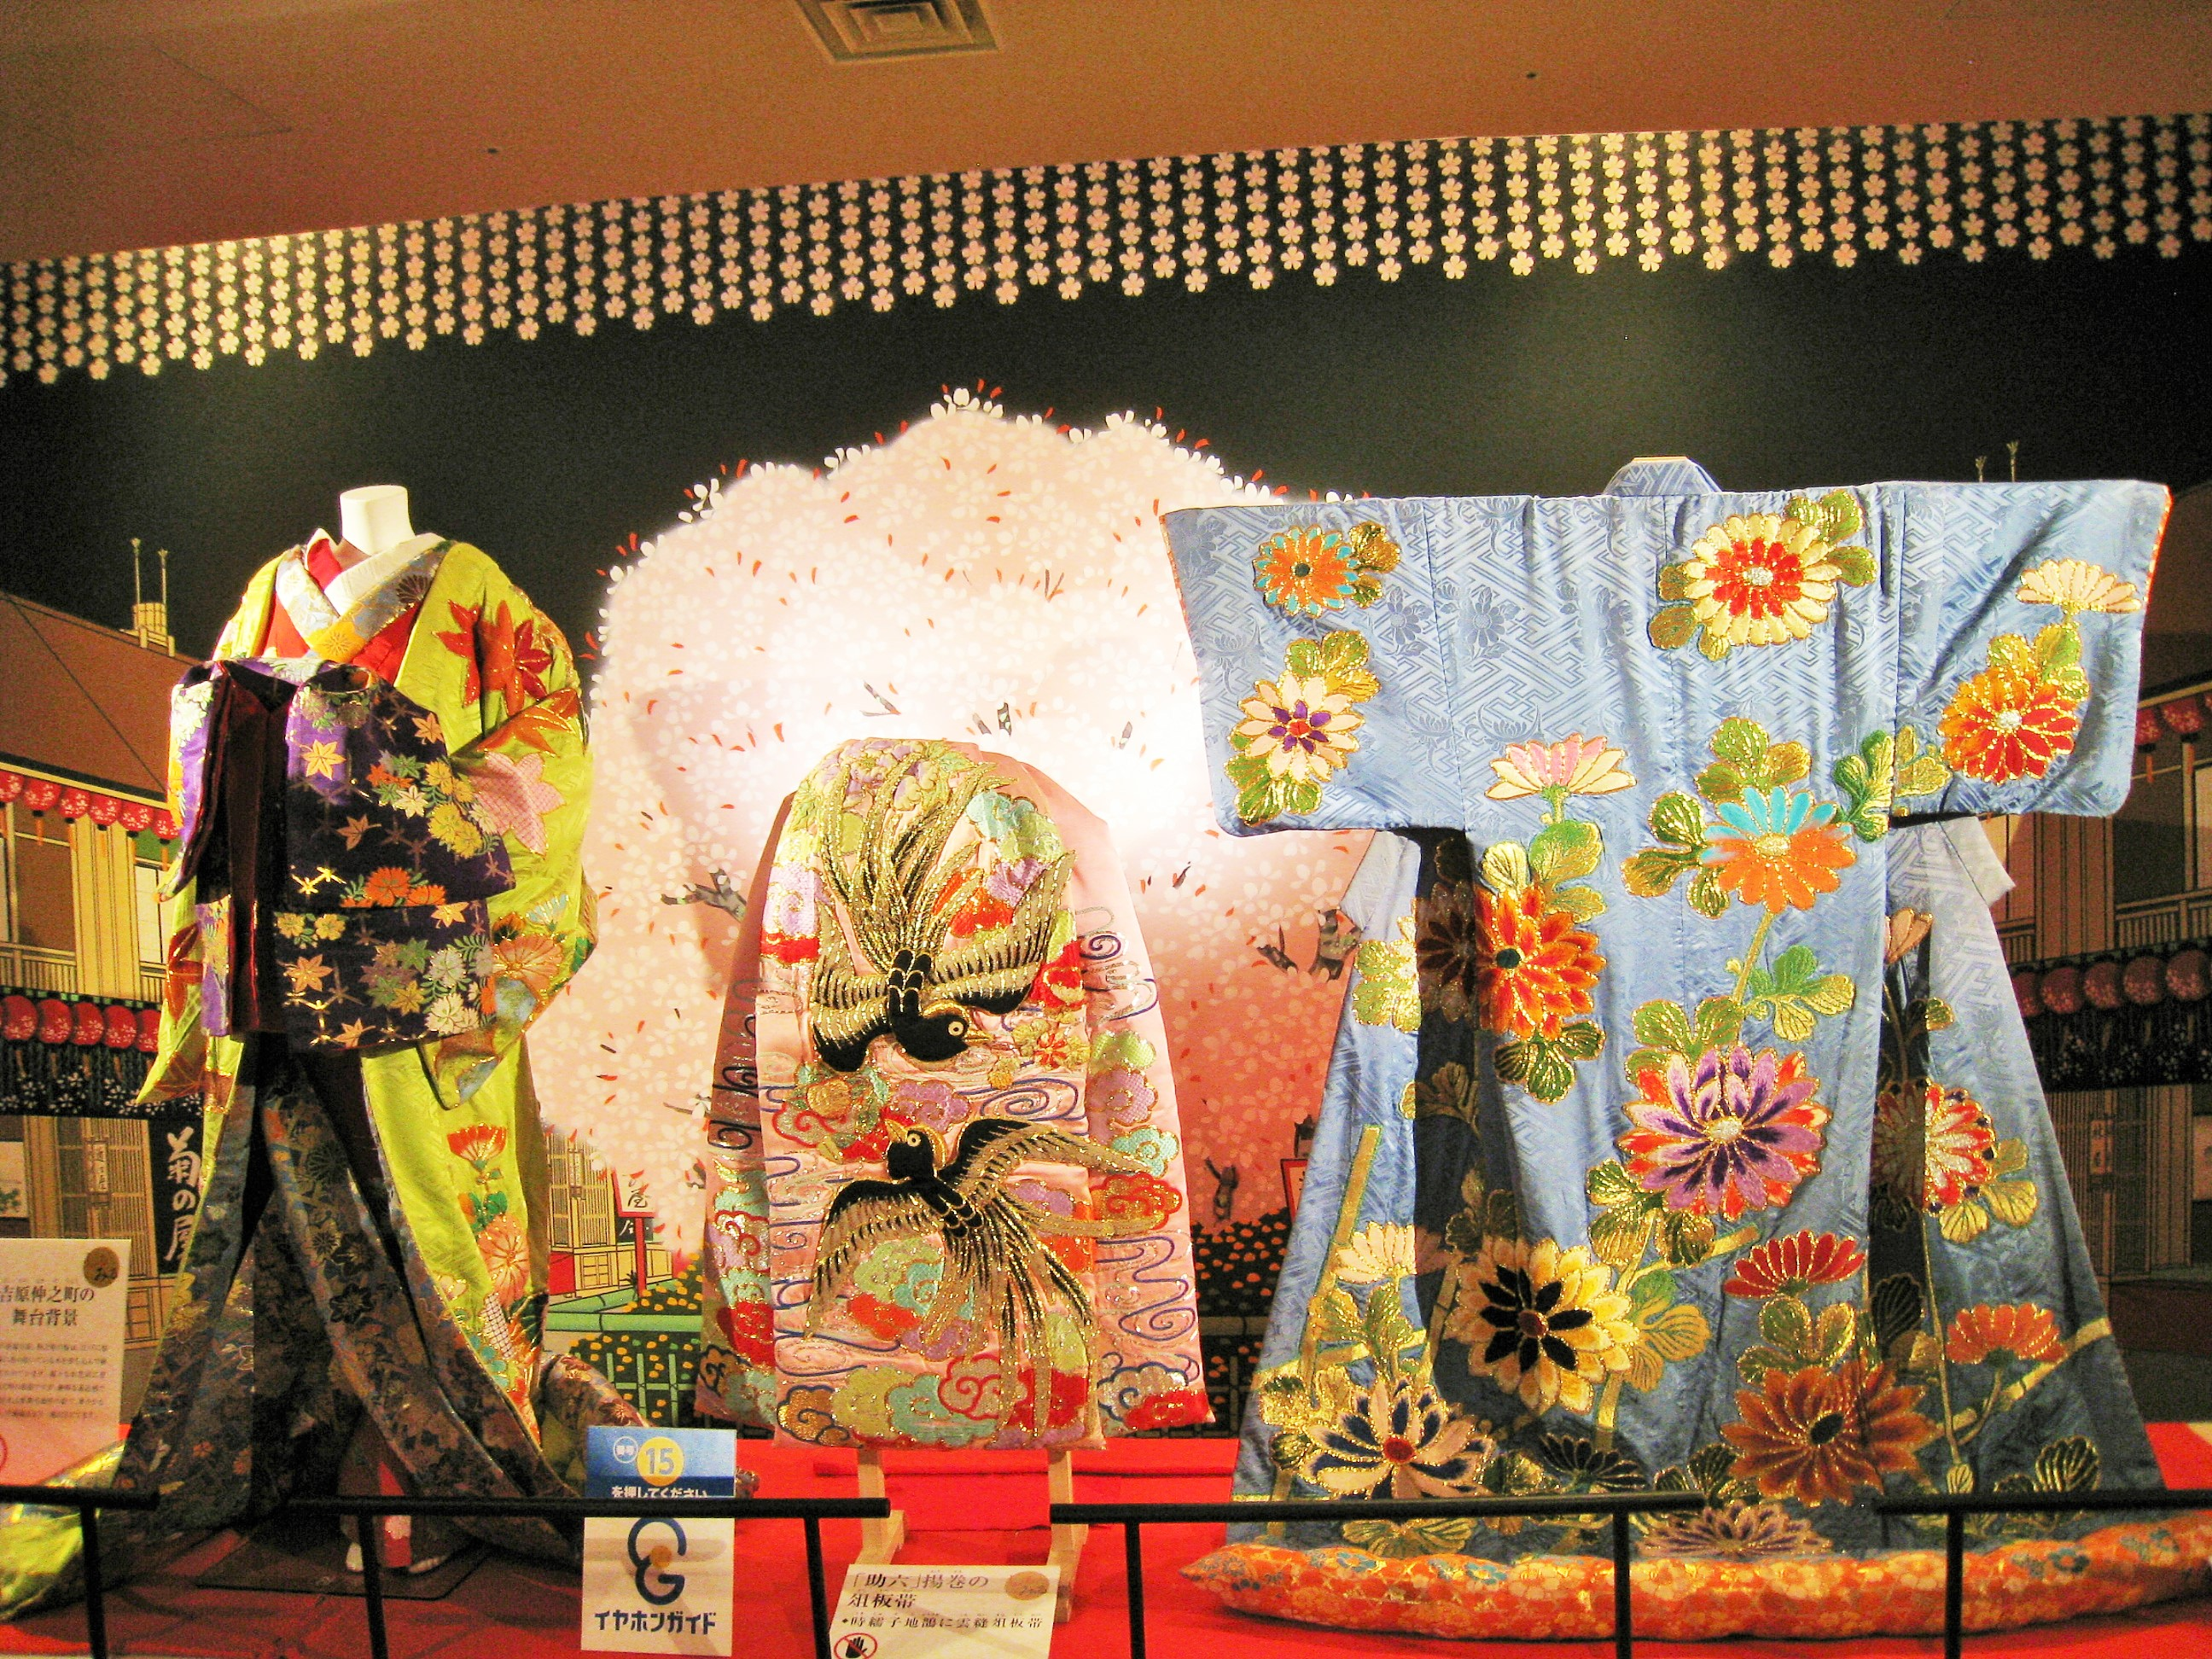 Costumes used for the shows